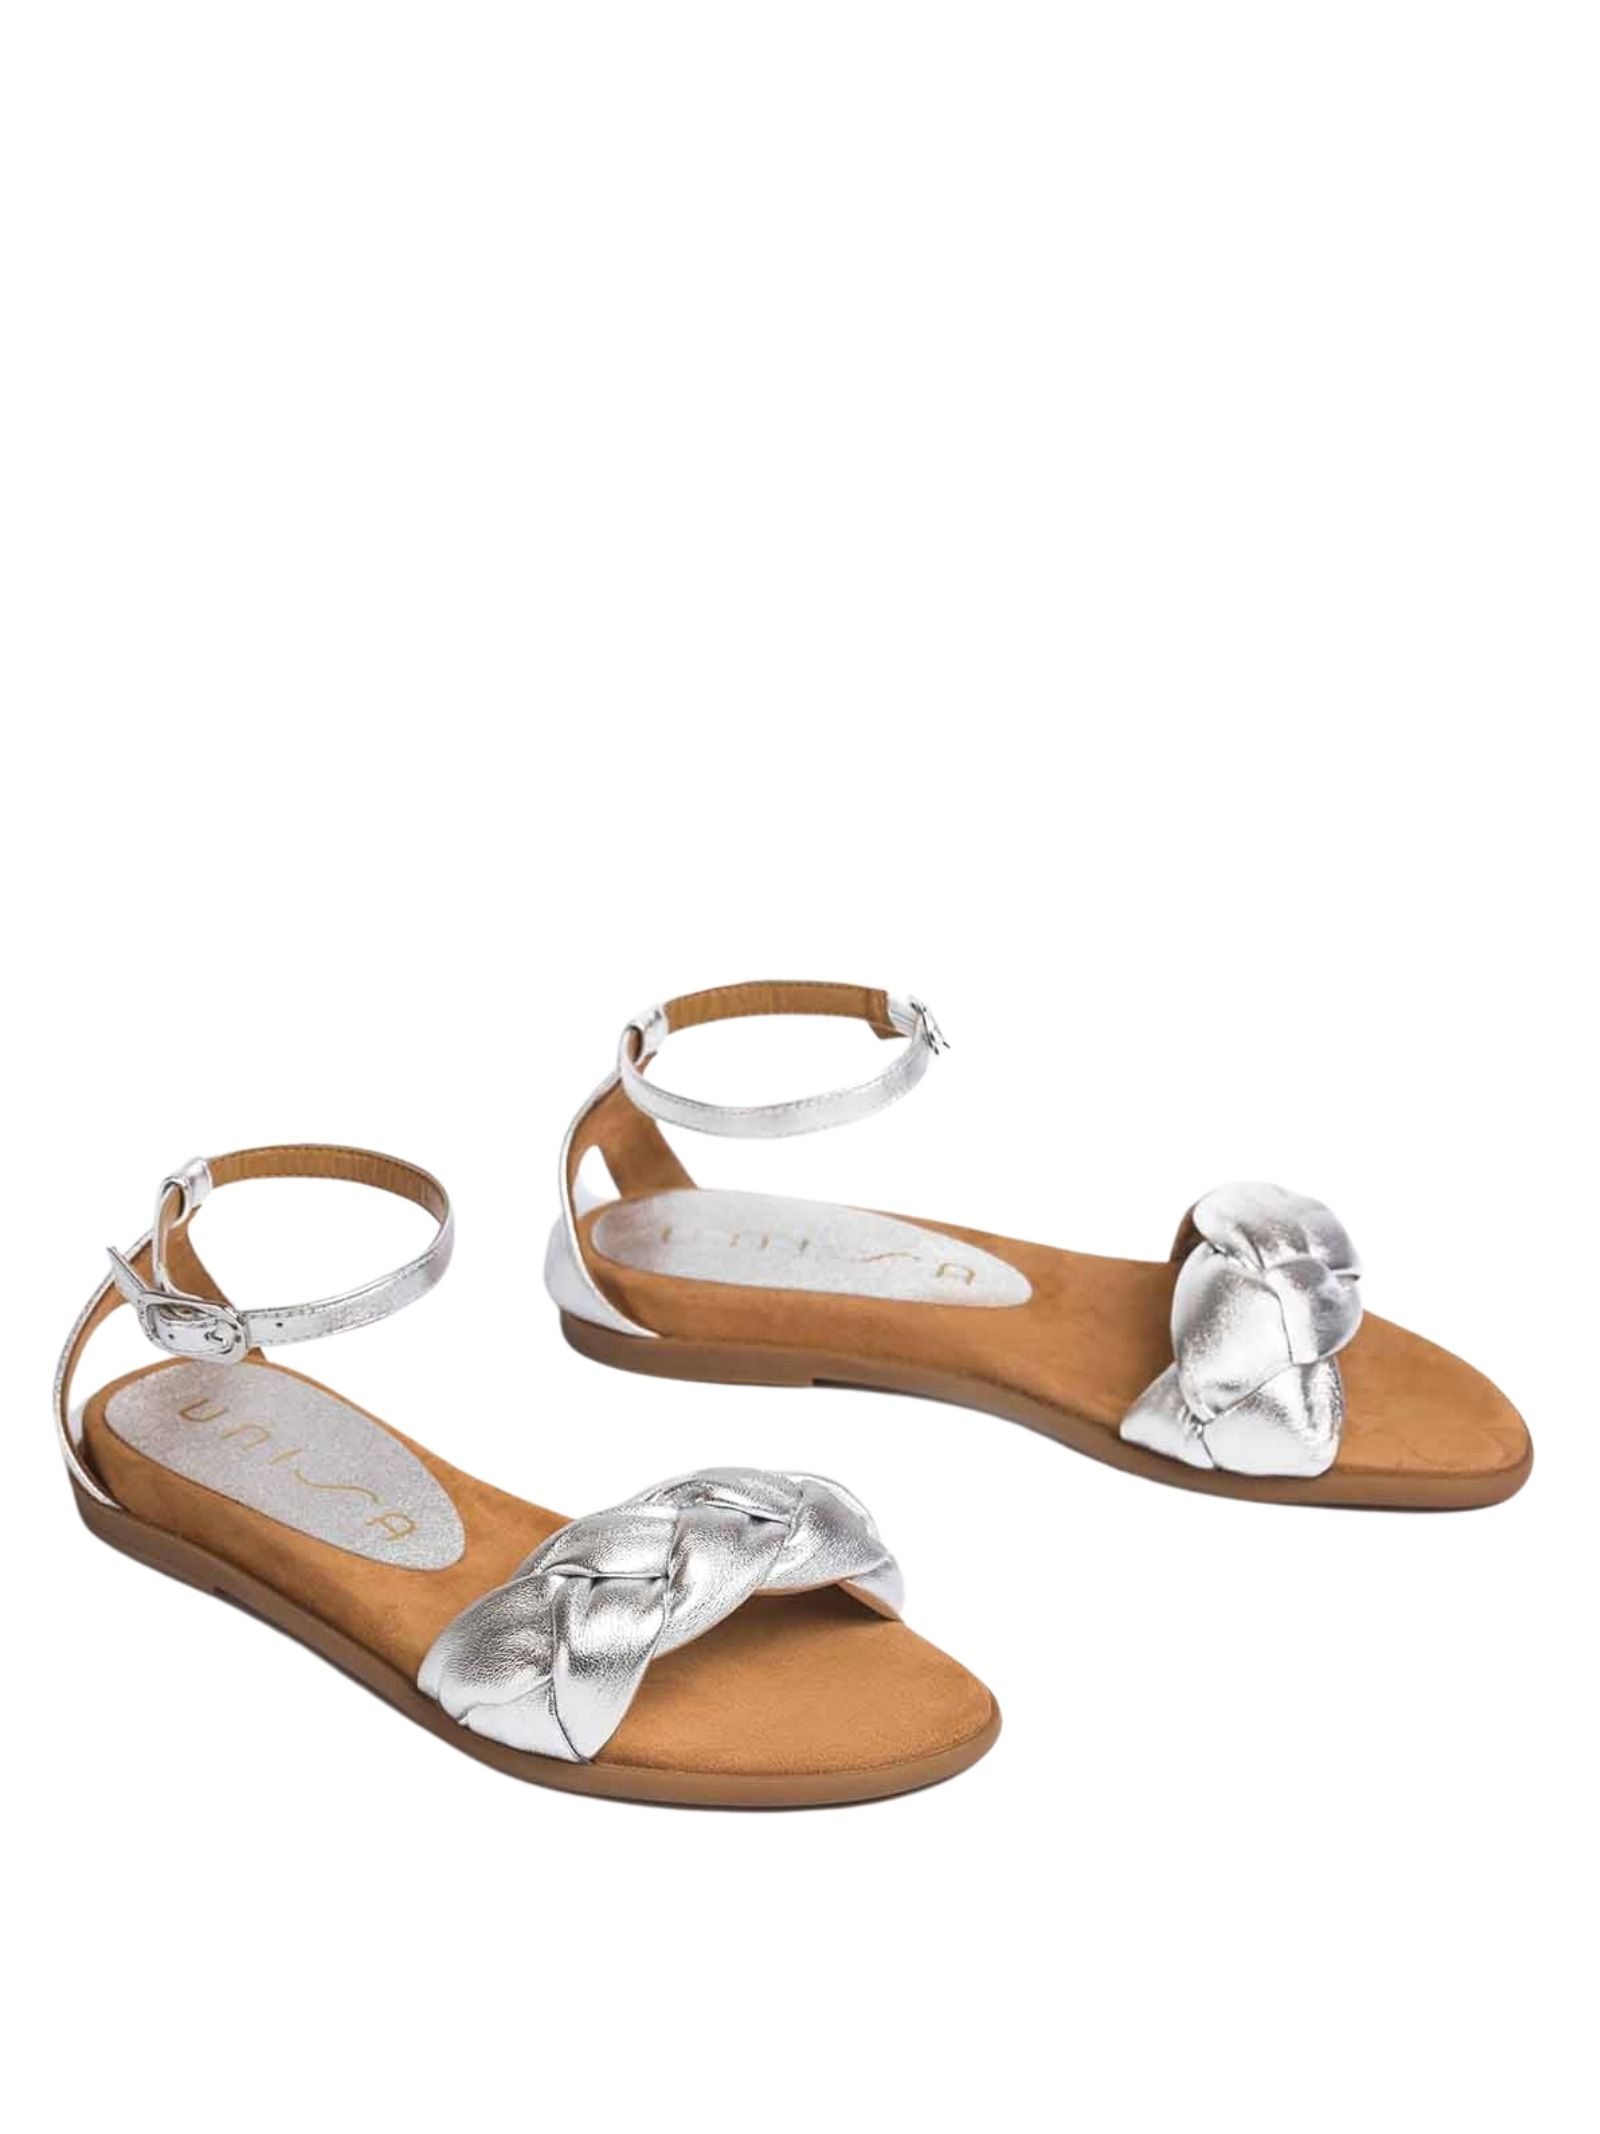 Women's Shoes Low Sandals in Braided Silver Laminated Leather with Ankle Strap Unisa | Flat sandals | CELADA604